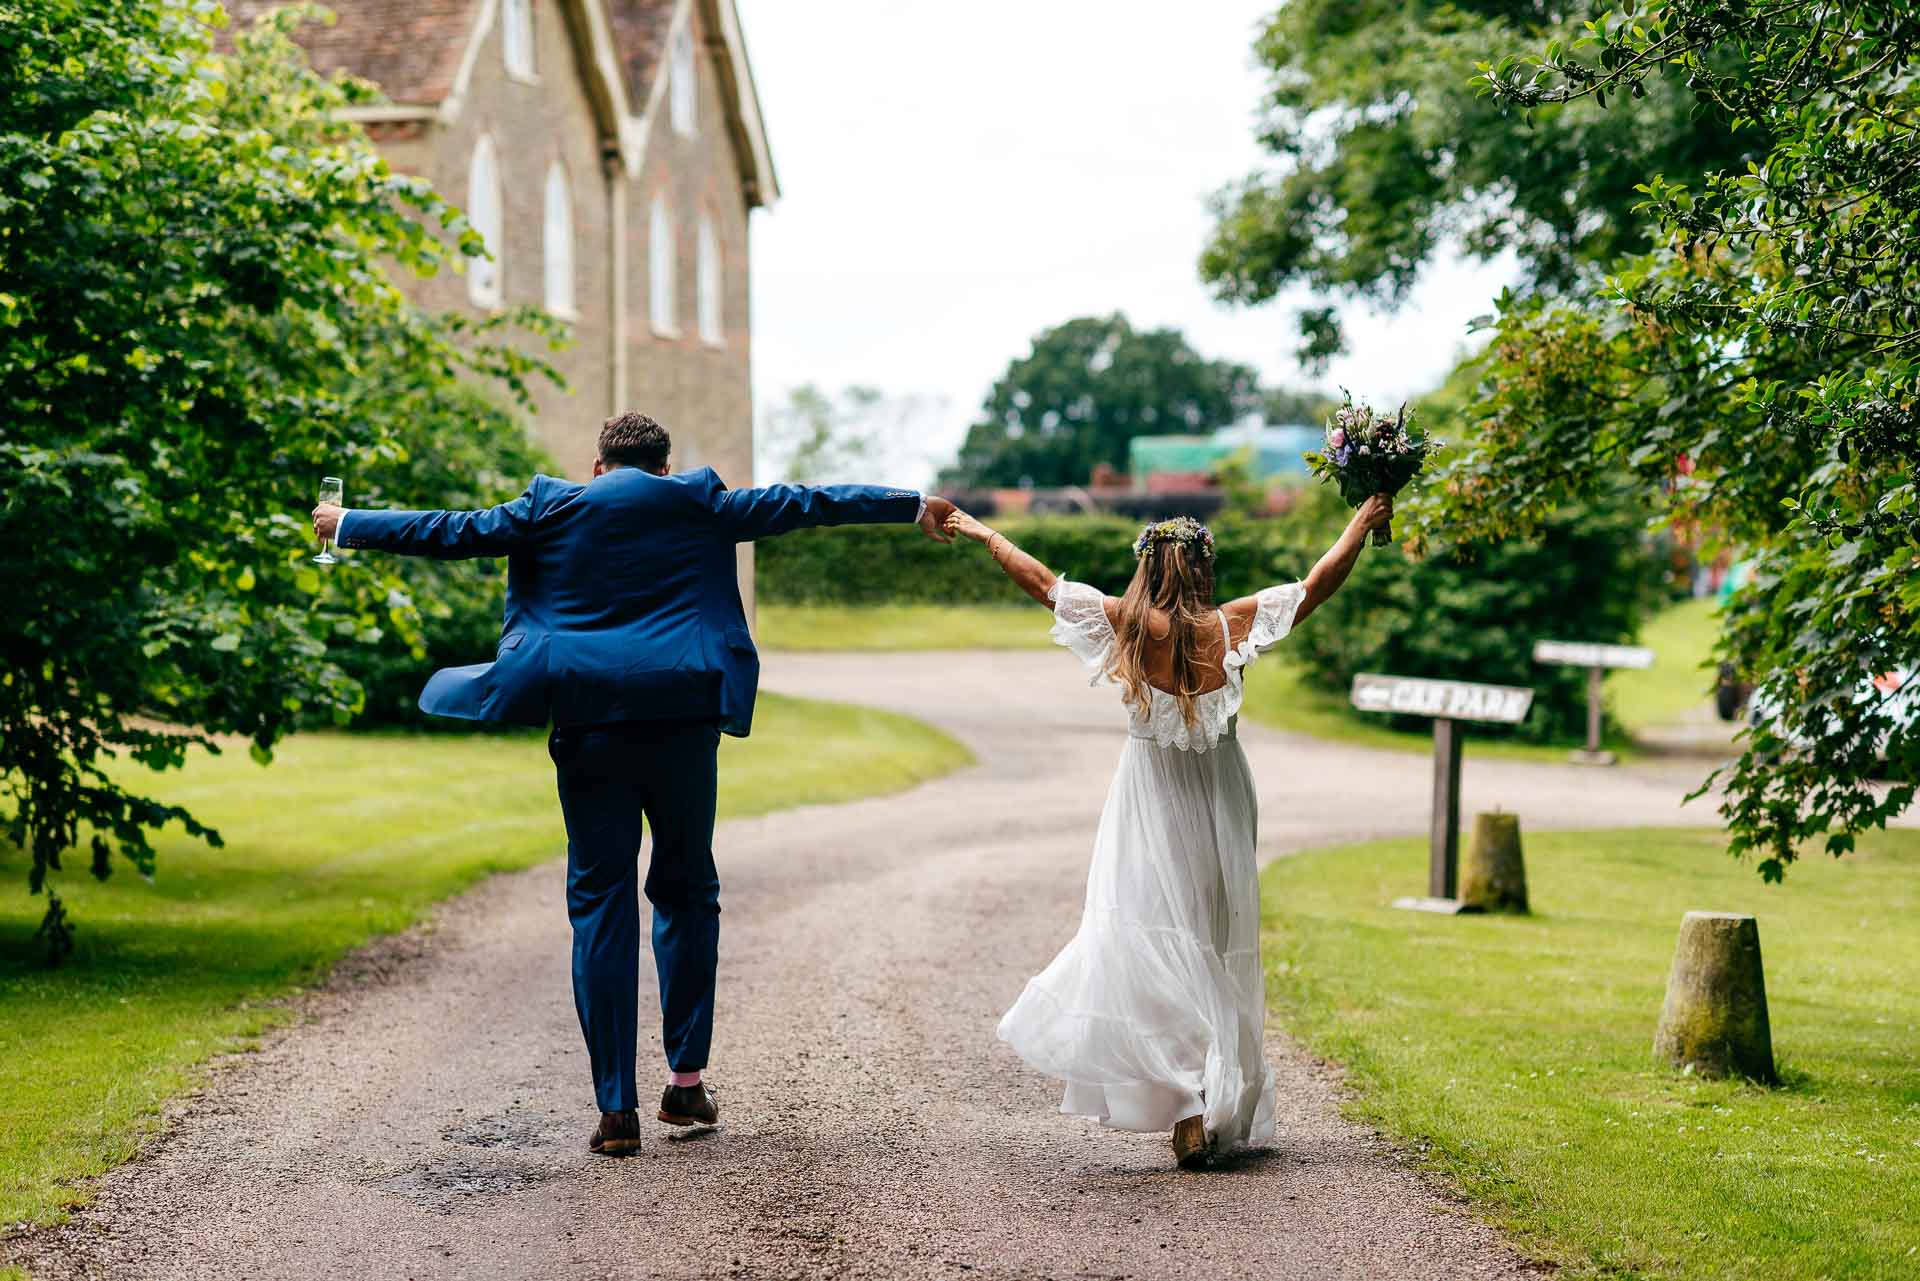 Bride and Groom celebrate quietly on their own as they emerge from the church and head down to the reception. Hand in hand arms aloft.